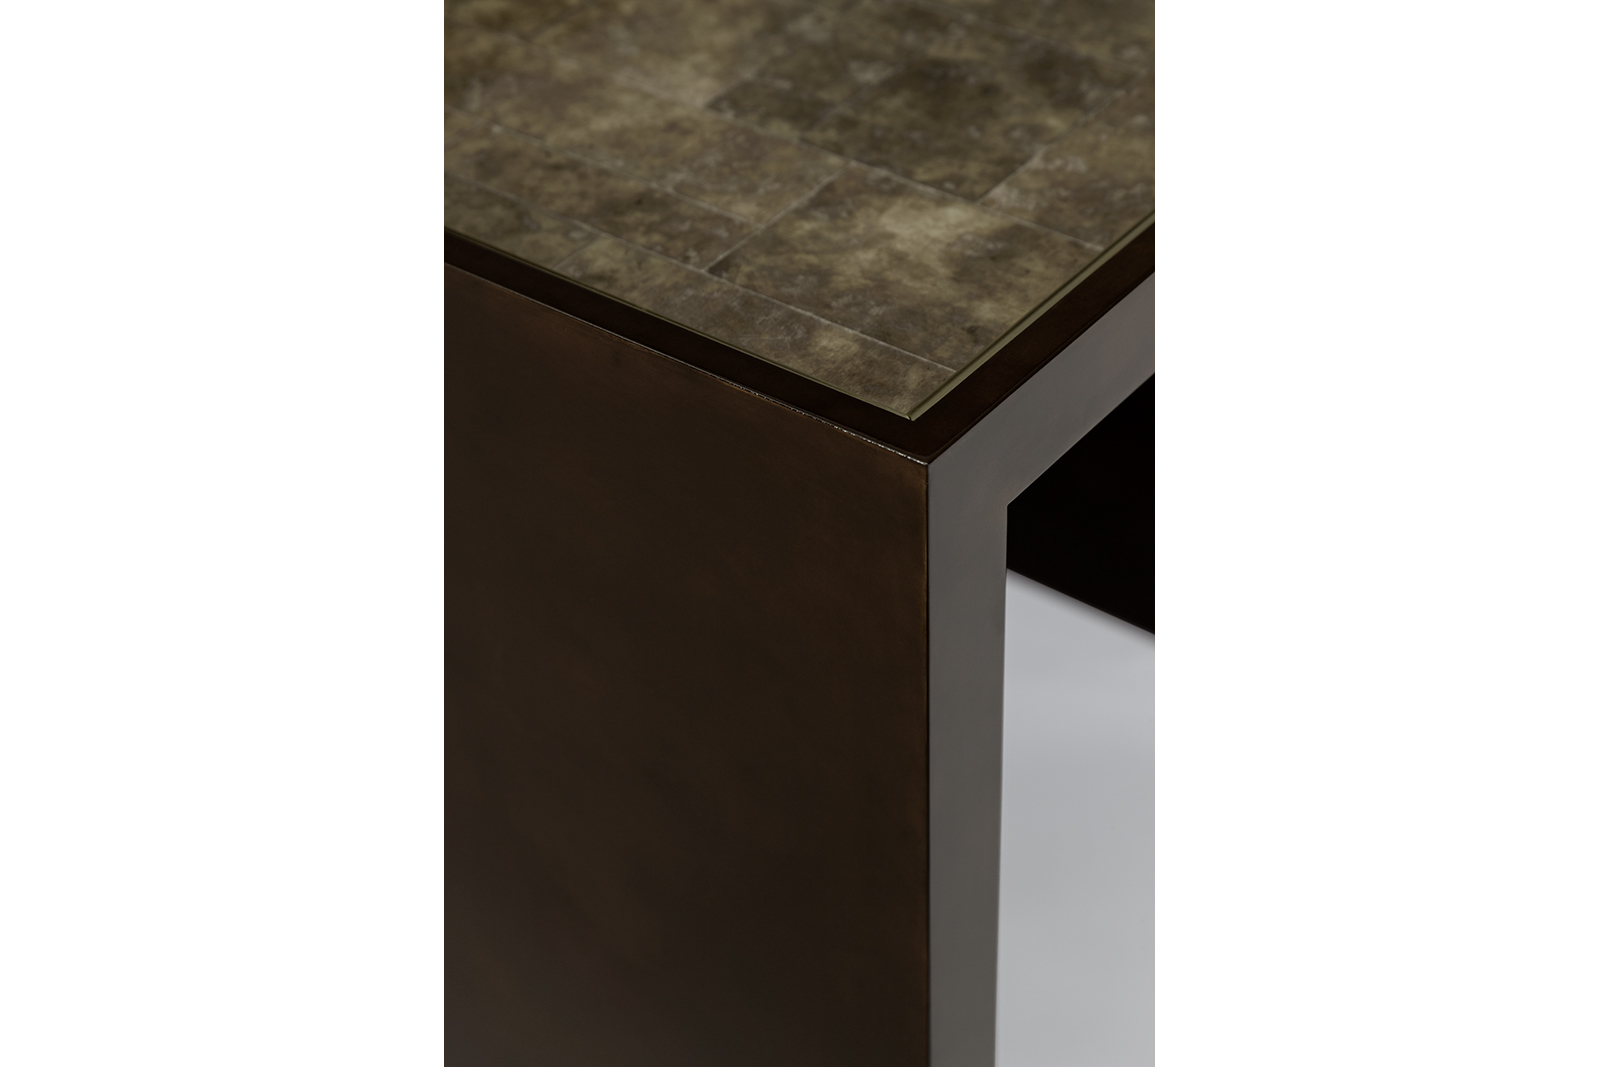 Nesting Tables In Mica, Tone-on-tone Lacquer & Gilded Bronze